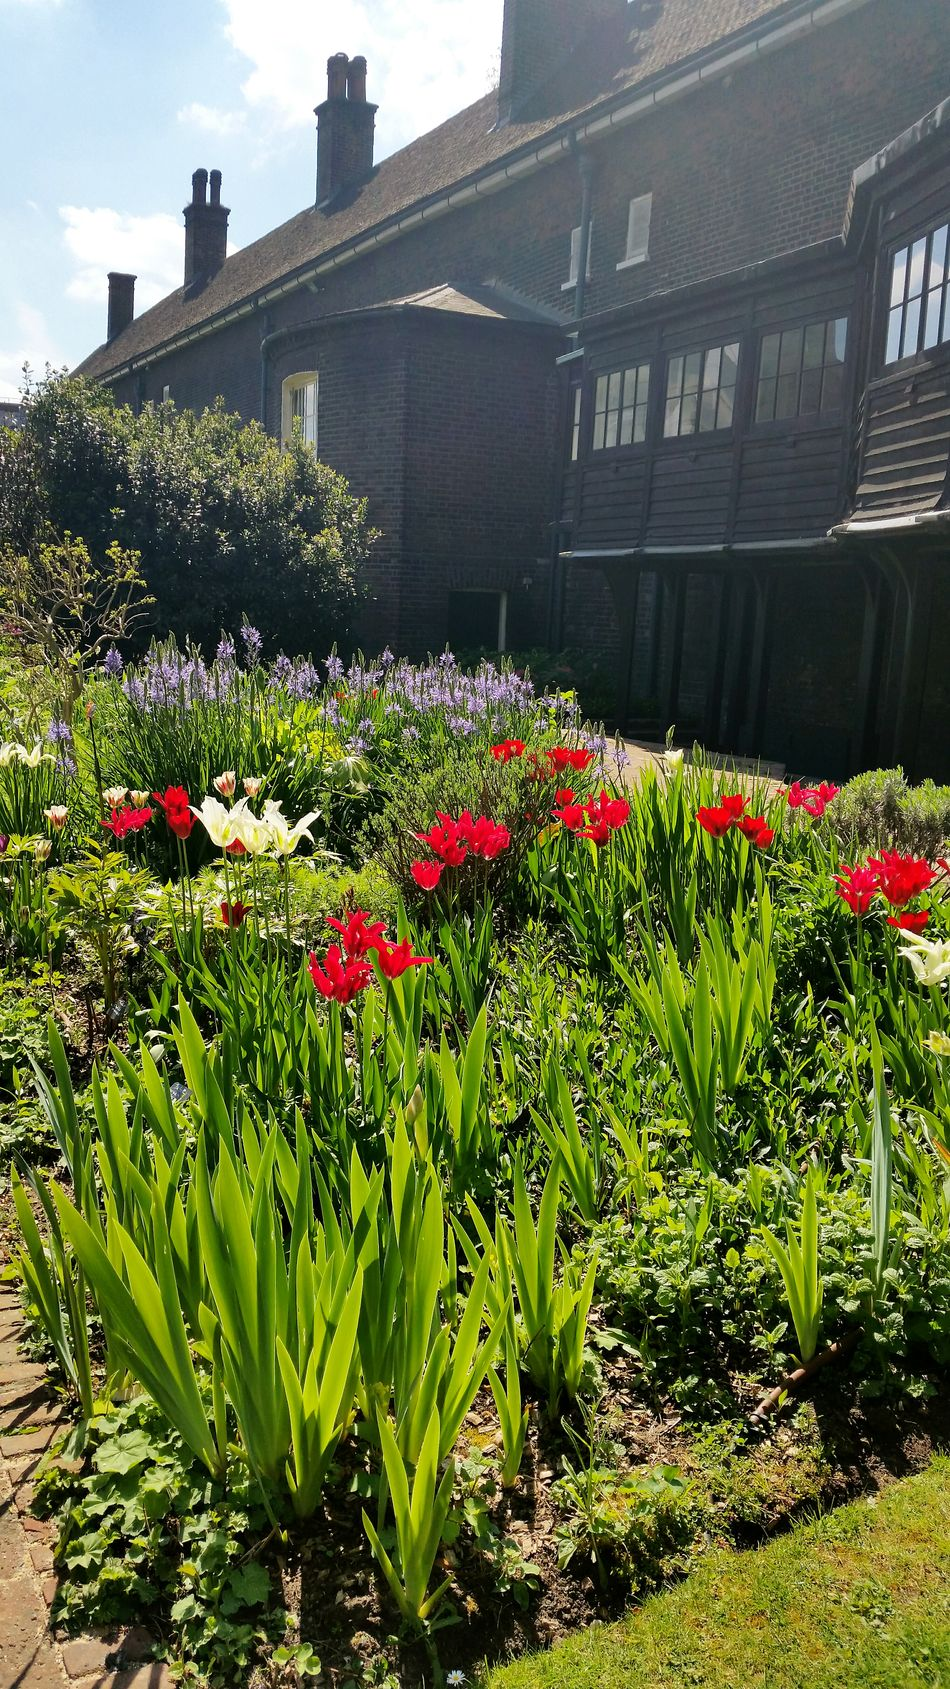 Flower Head Freshness Beauty In Nature Flowerbed Sunlight No People Building Exterior Growth Outdoors Day Plant Built Structure Architecture Flower Nature Geffrye Museum London Museum Hoxton East London Uk Colours Springtime